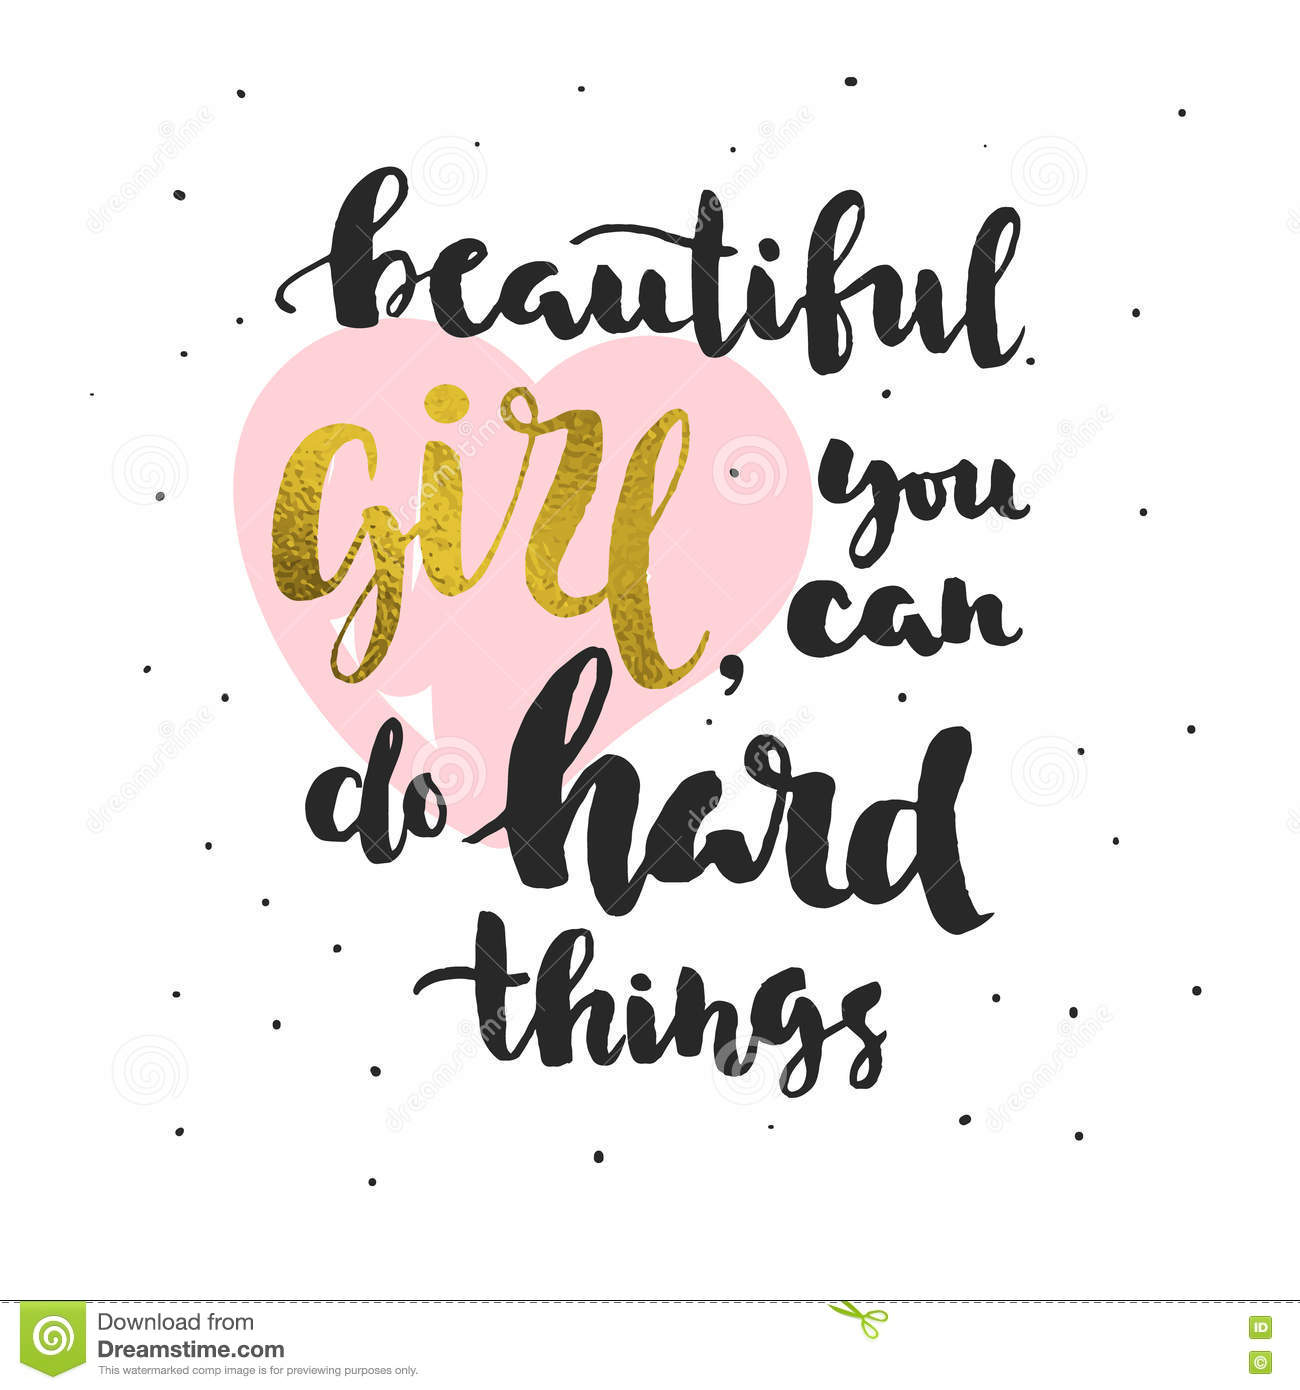 Quote about believing in yourself (for girls)